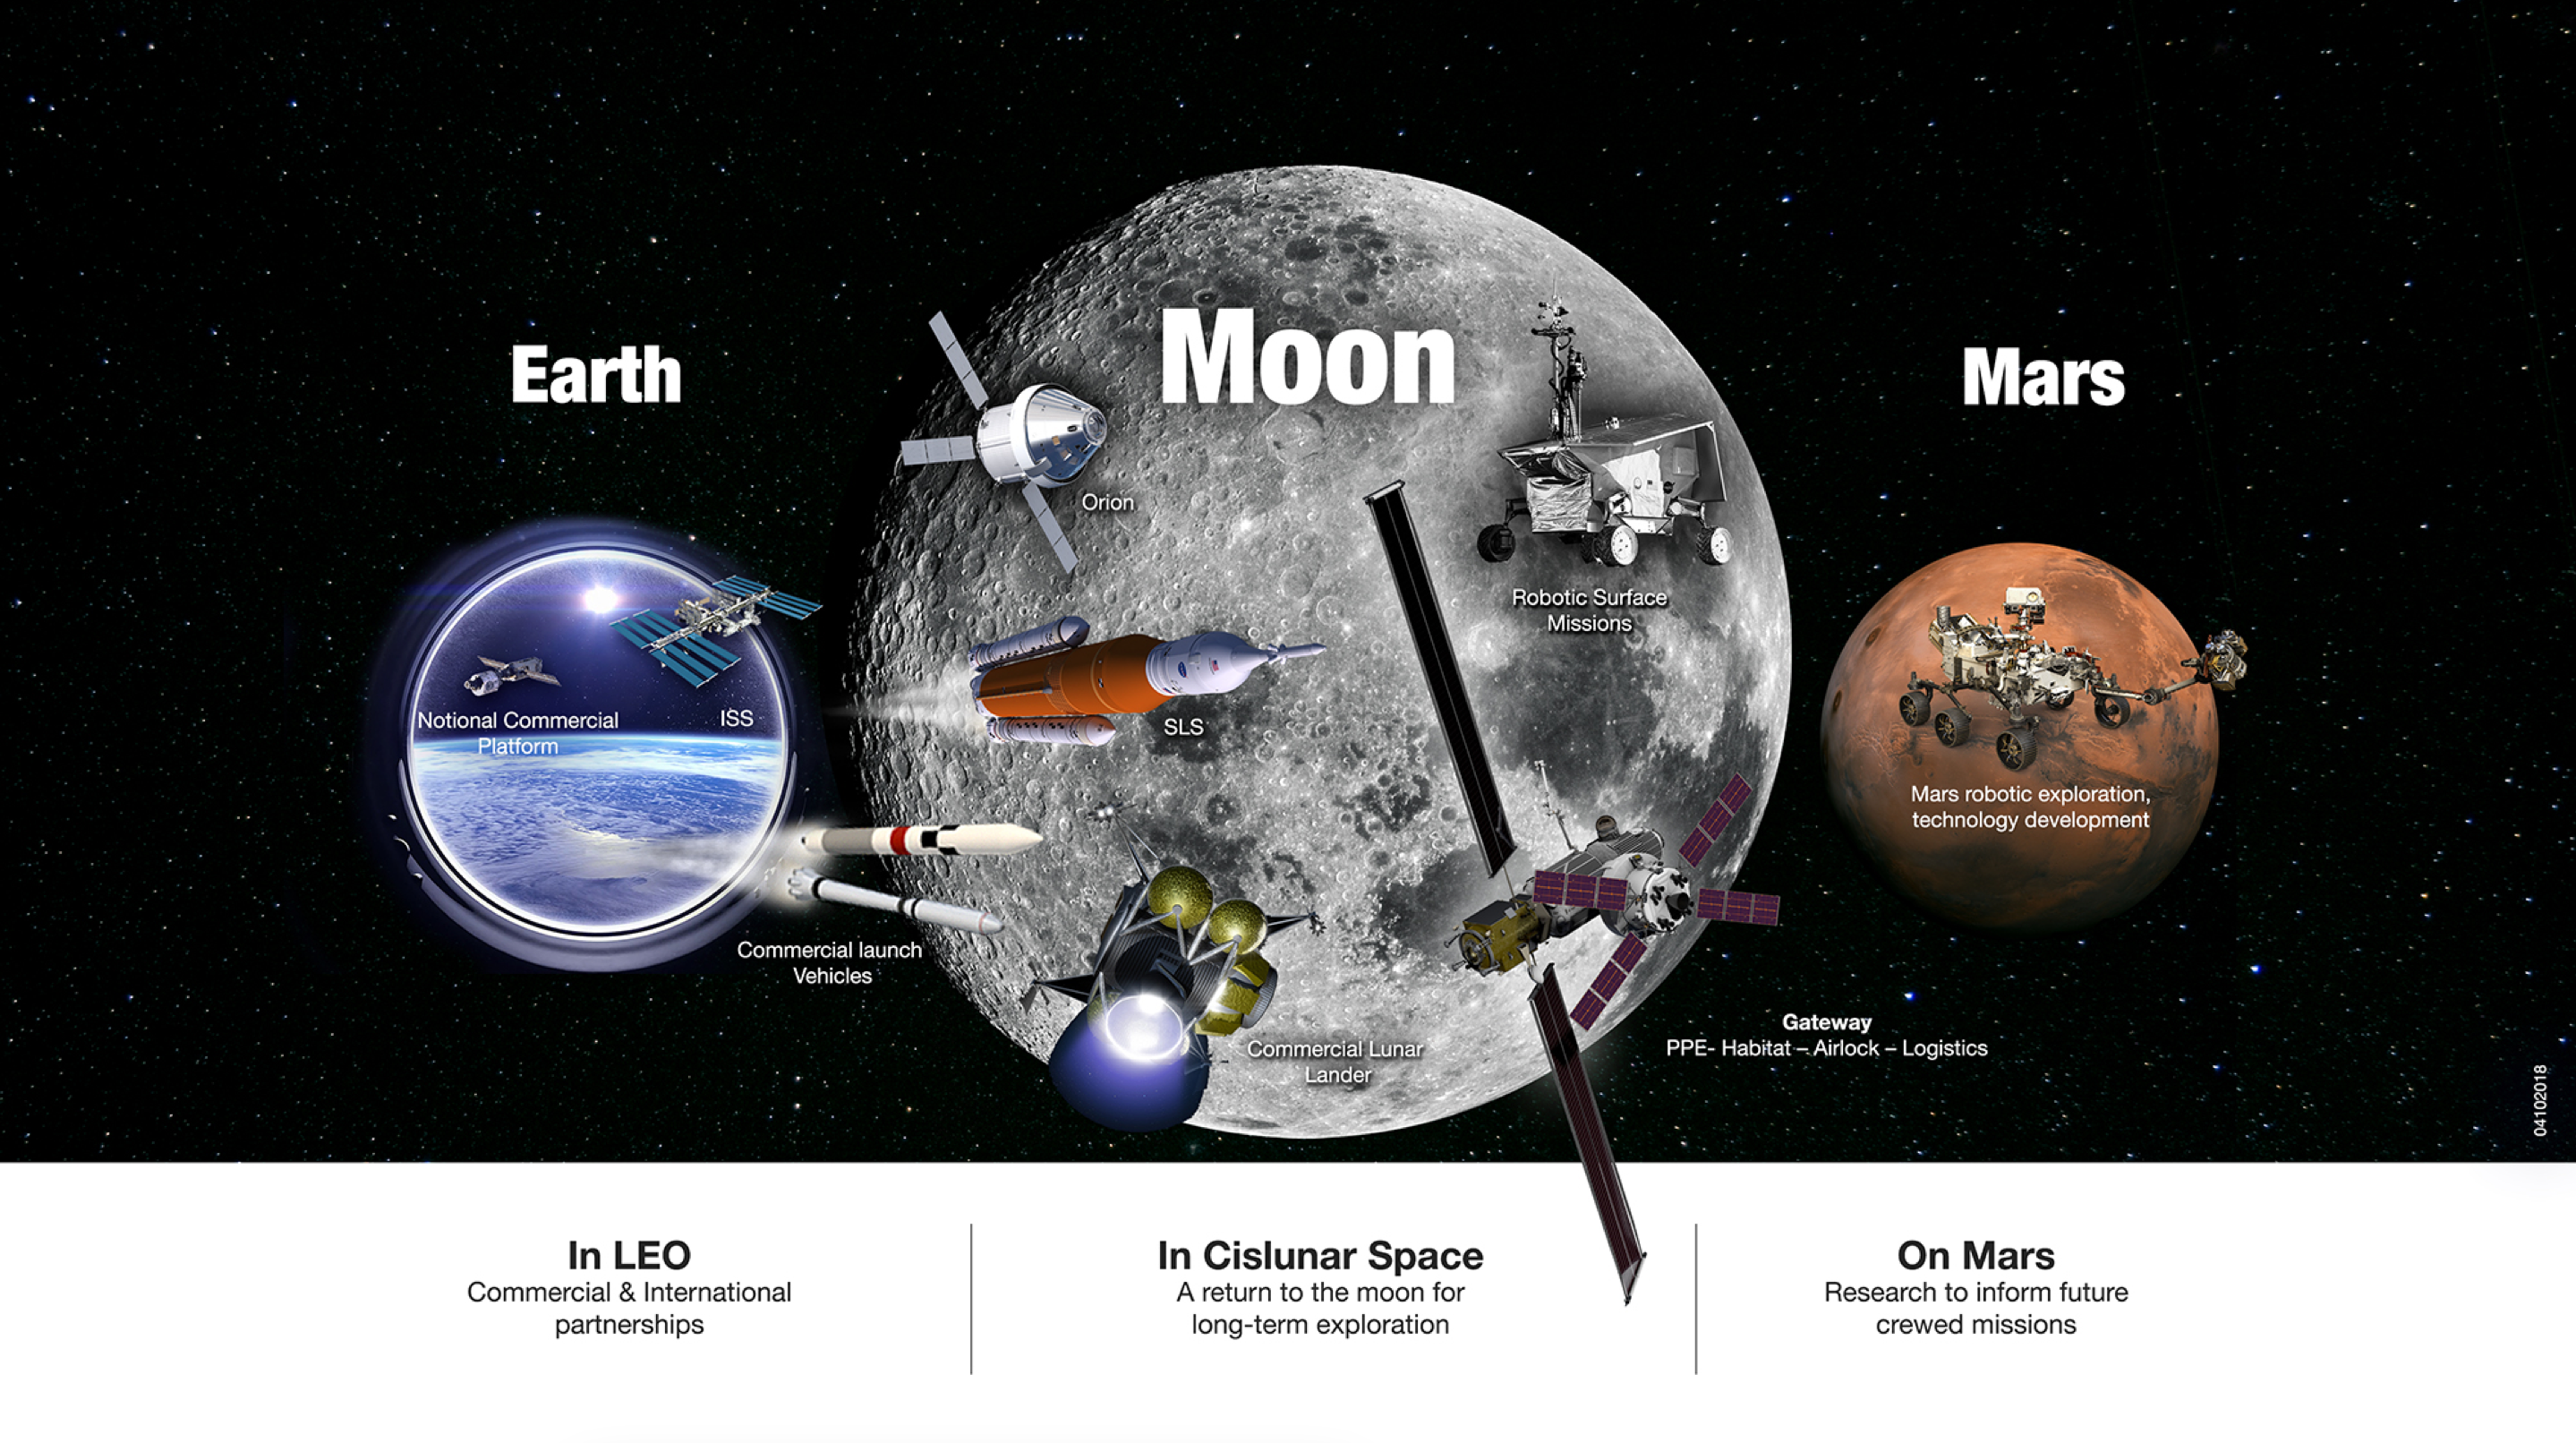 Nasa Unveils Sustainable Campaign To Return To Moon On To Mars Nasa